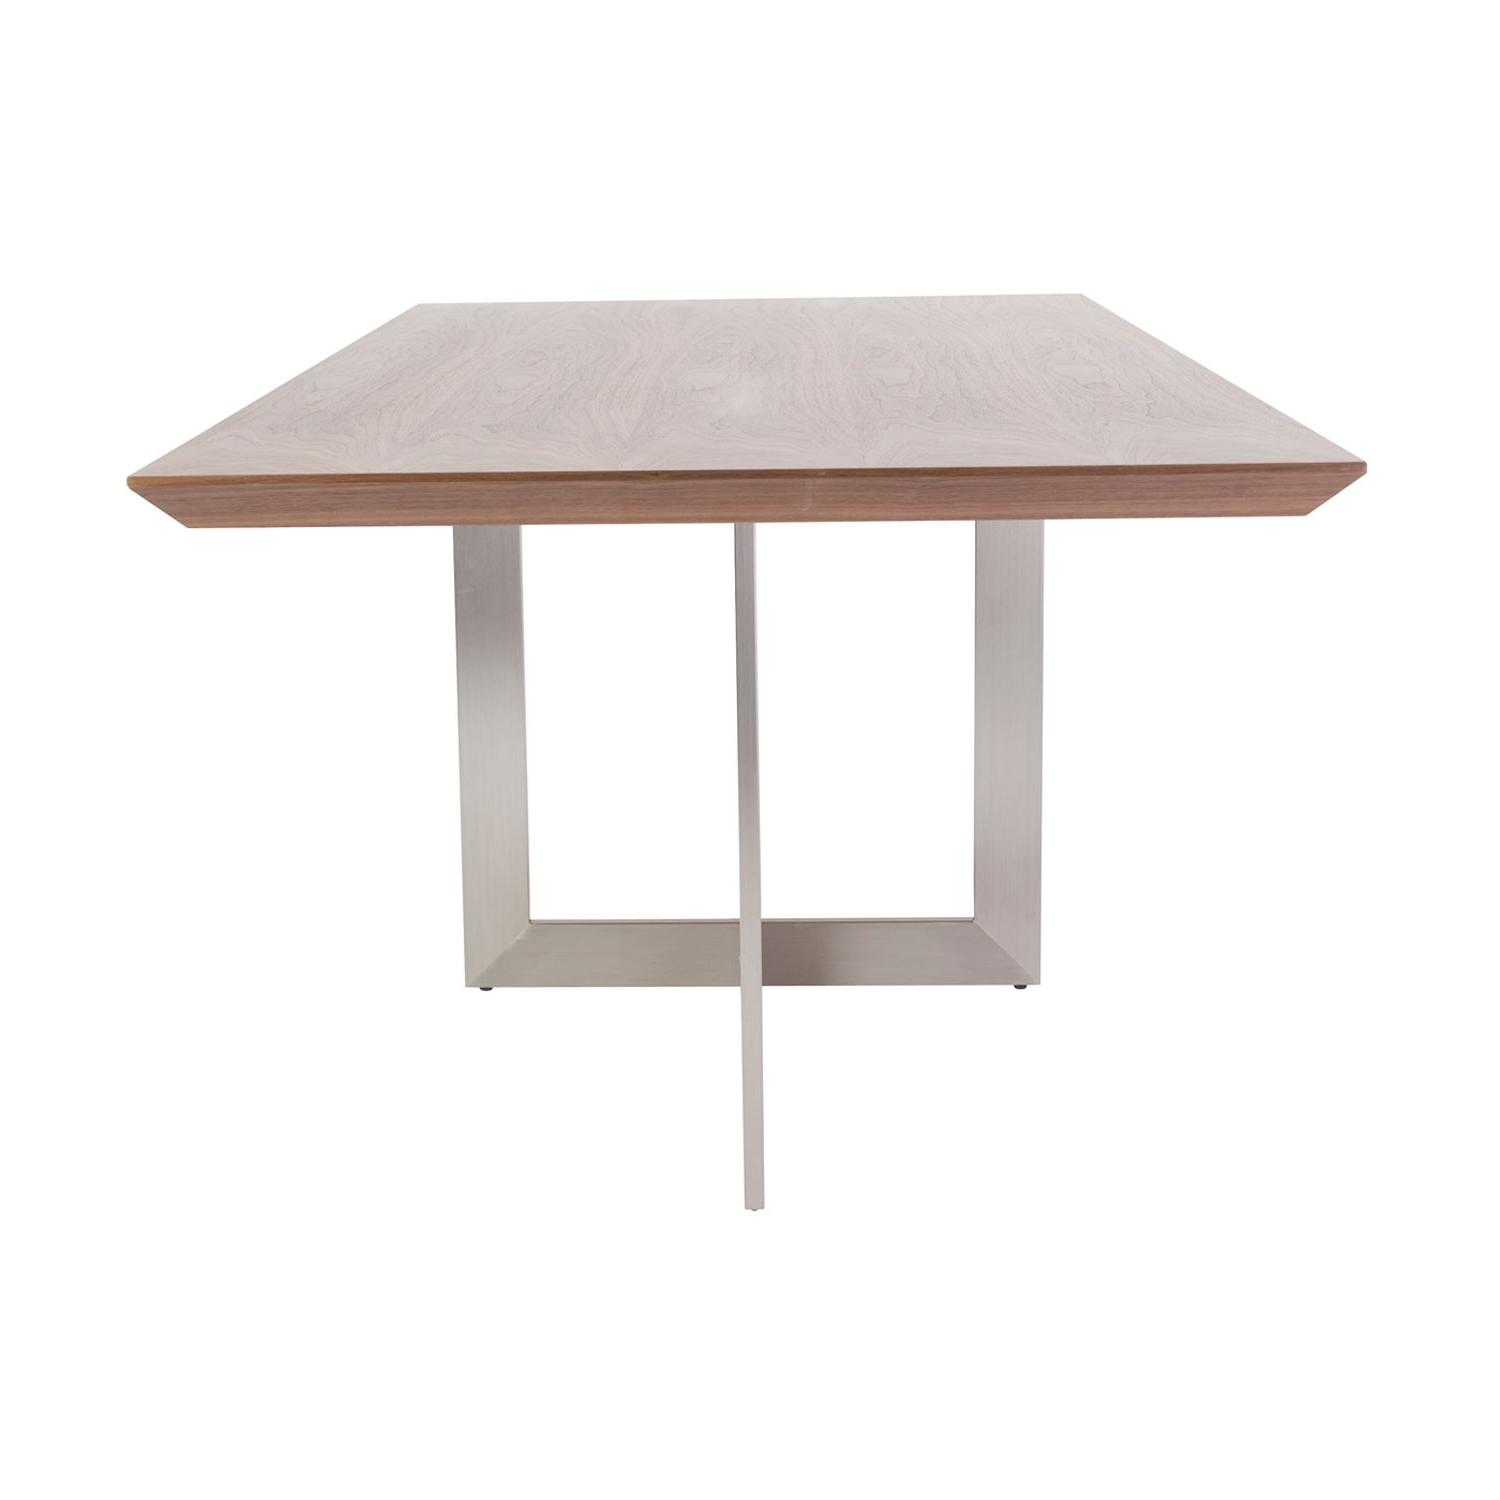 Brushed Steel Dining Tables Throughout Fashionable Eurostyle Tosca Rectangle Dining Table In American Walnut With (Gallery 16 of 25)